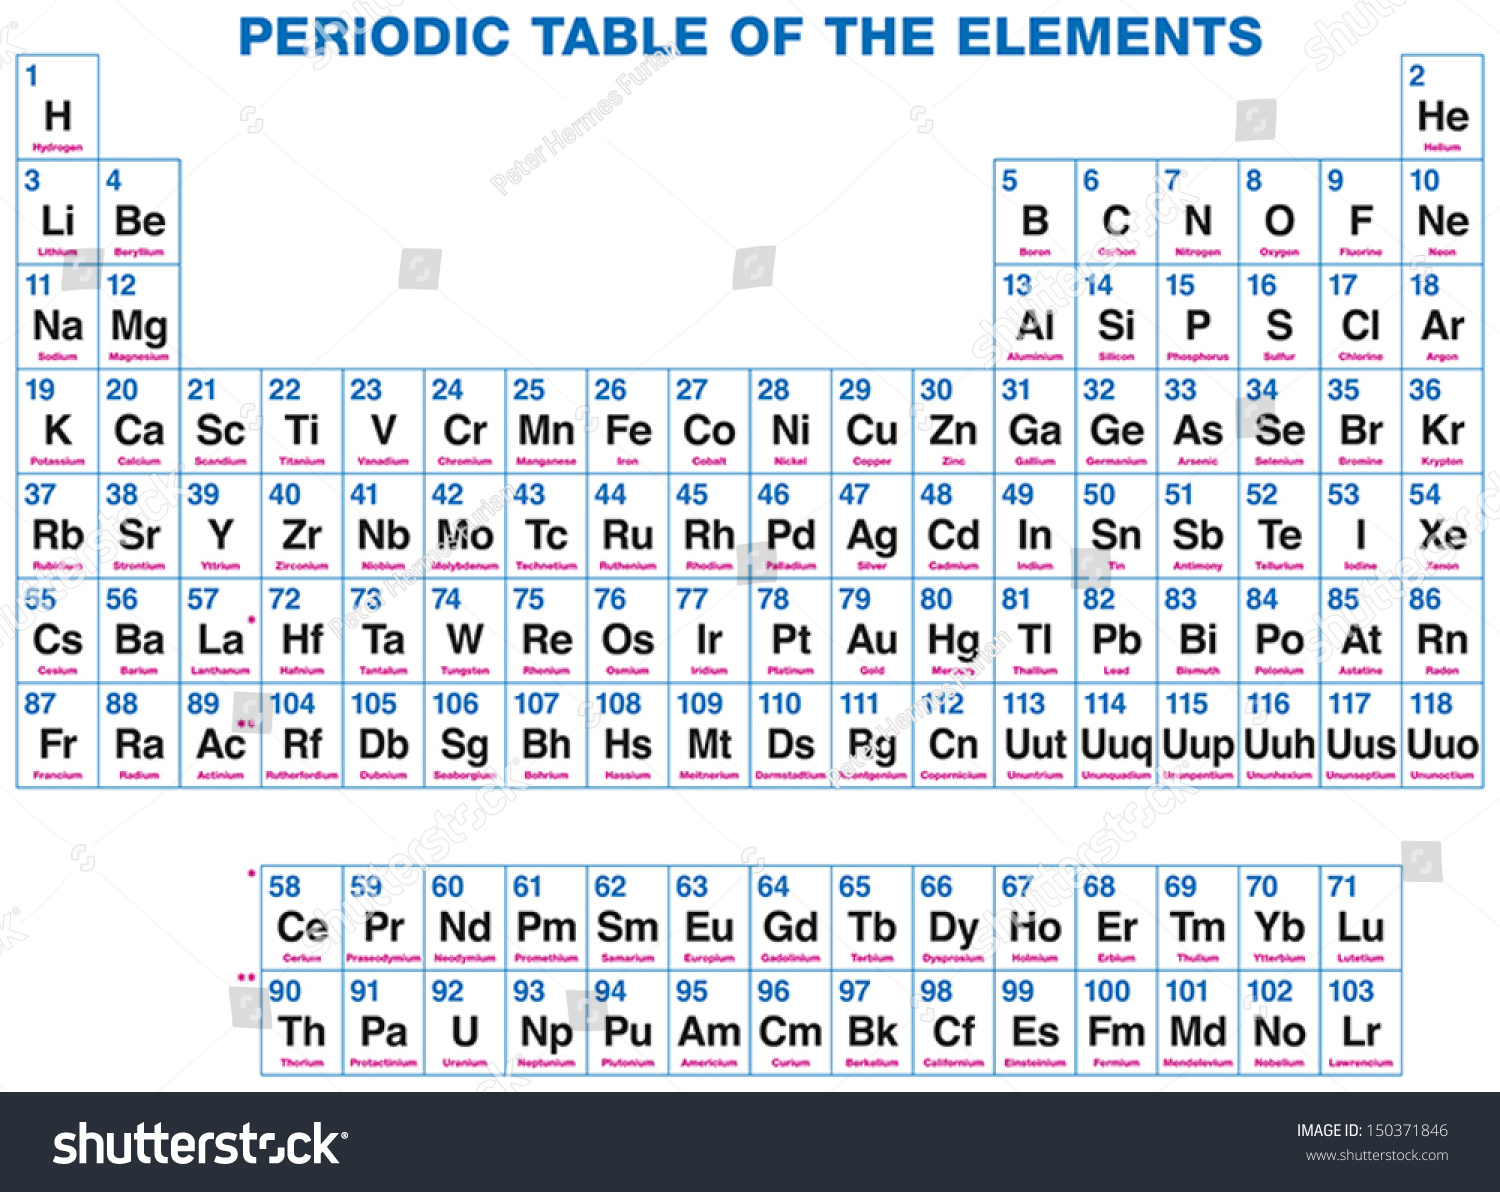 Periodic table elements 118 chemical elements stock vector 150371846 periodic table of the elements the 118 chemical elements organized on the basis of urtaz Choice Image